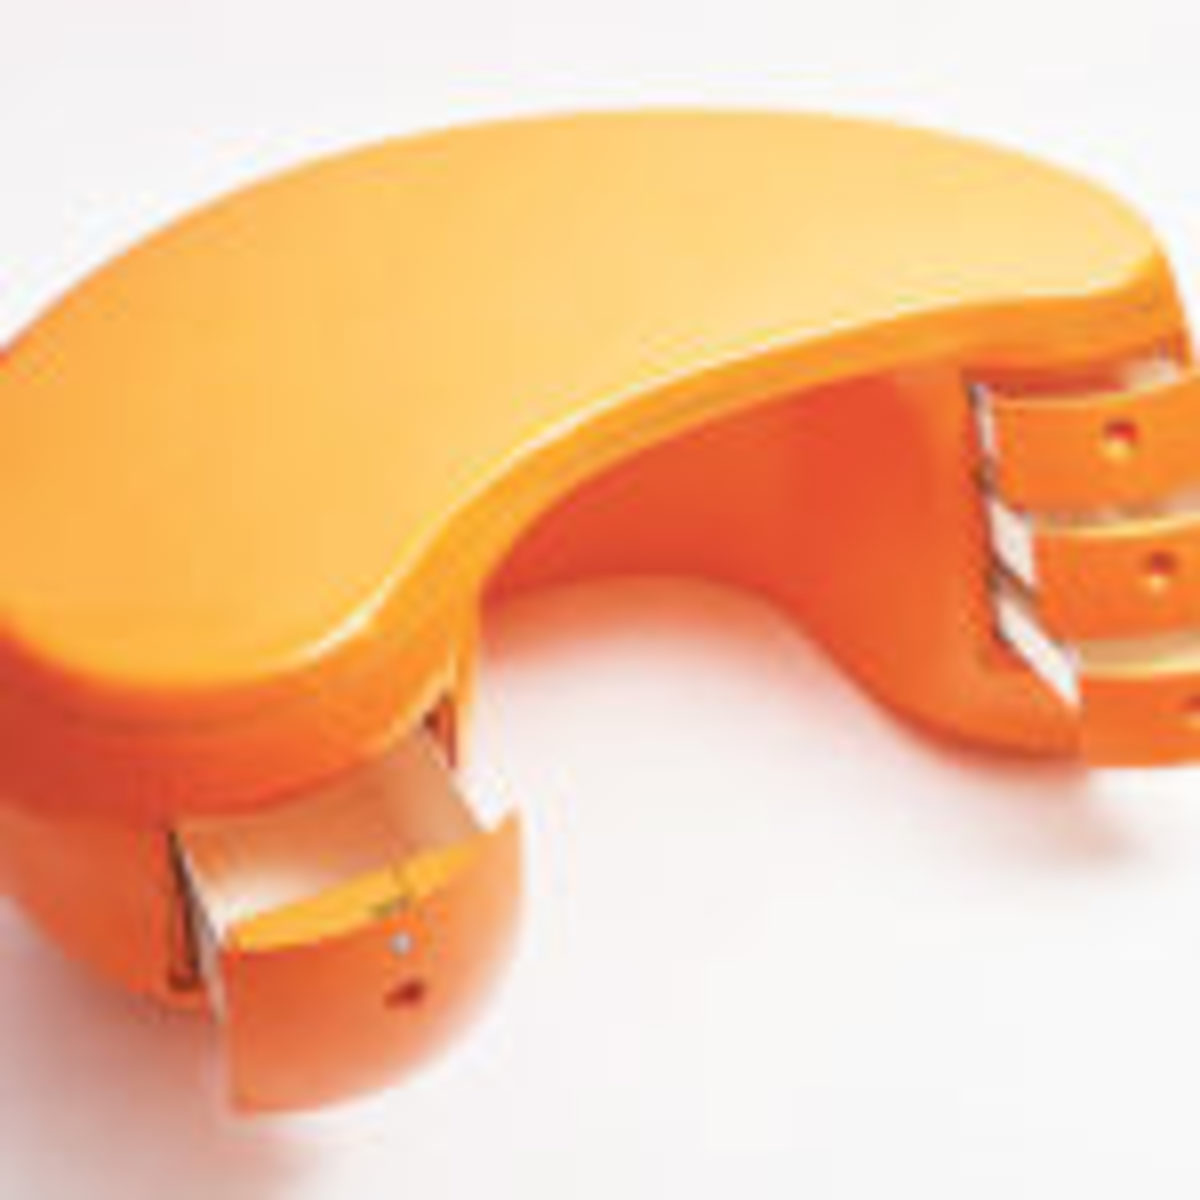 "Maurice Calka, orange Boomerang Desk, France, circa 1970, made by Maison Leleu, fiberglass, 33 1/2"" d. x 30 1/2"" h. x 70 1/2"" w., $85,000. Image courtesy of eBay Collective"